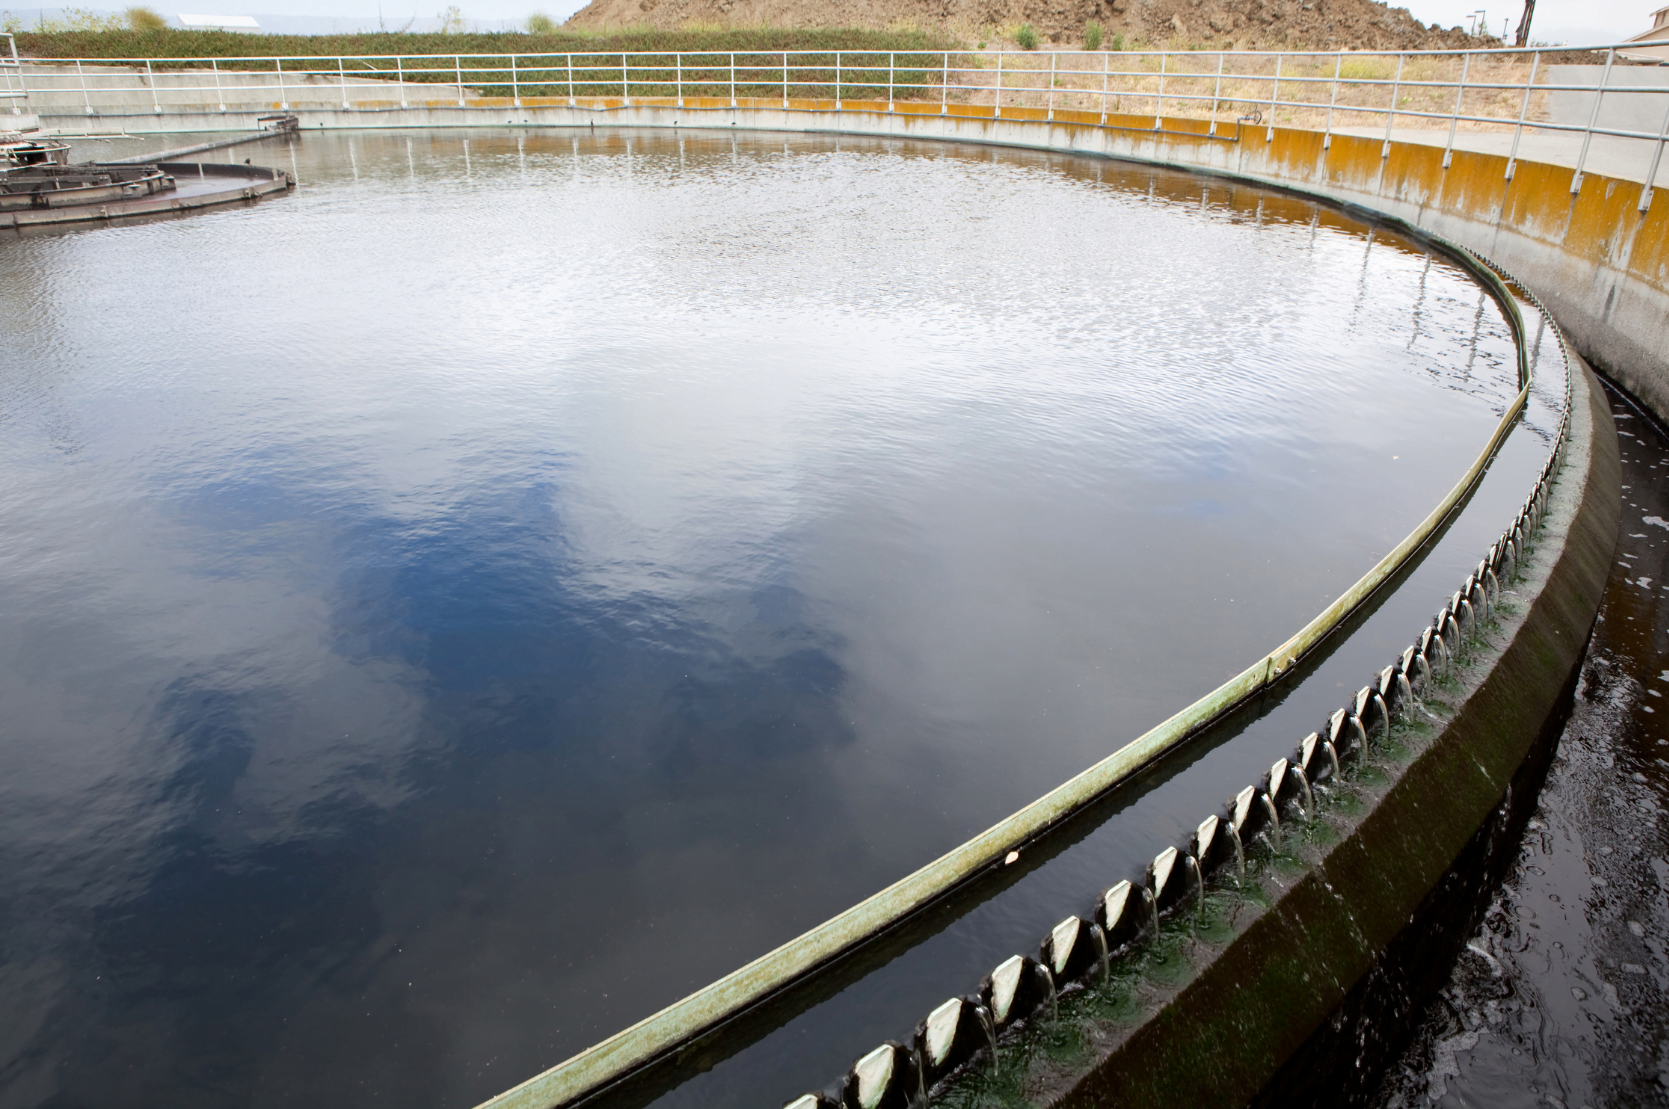 Aeration in Water Treatment